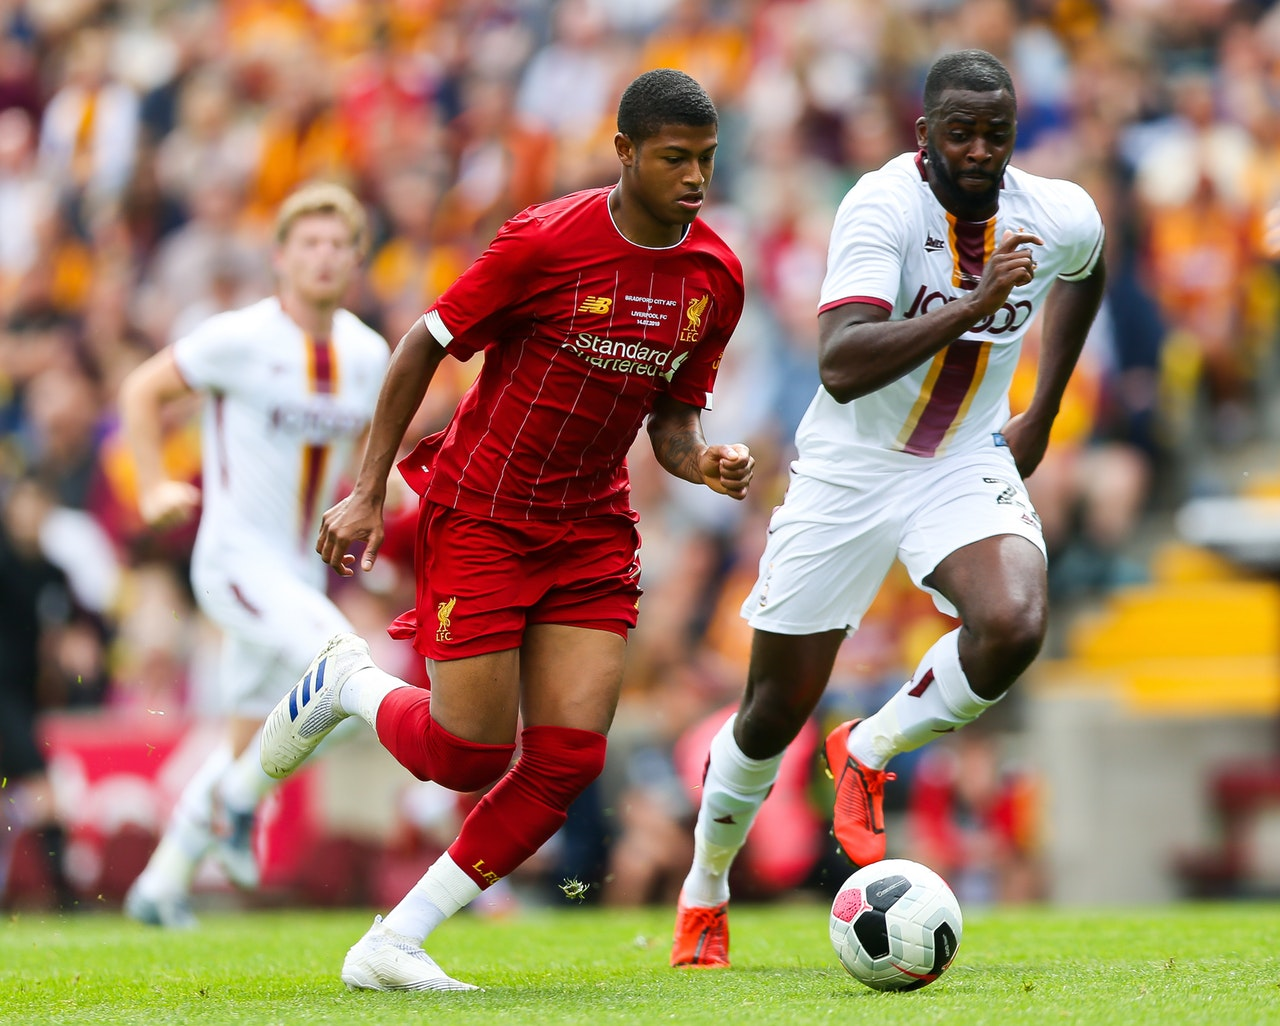 Klopp Talks Up Big Year For Brewster